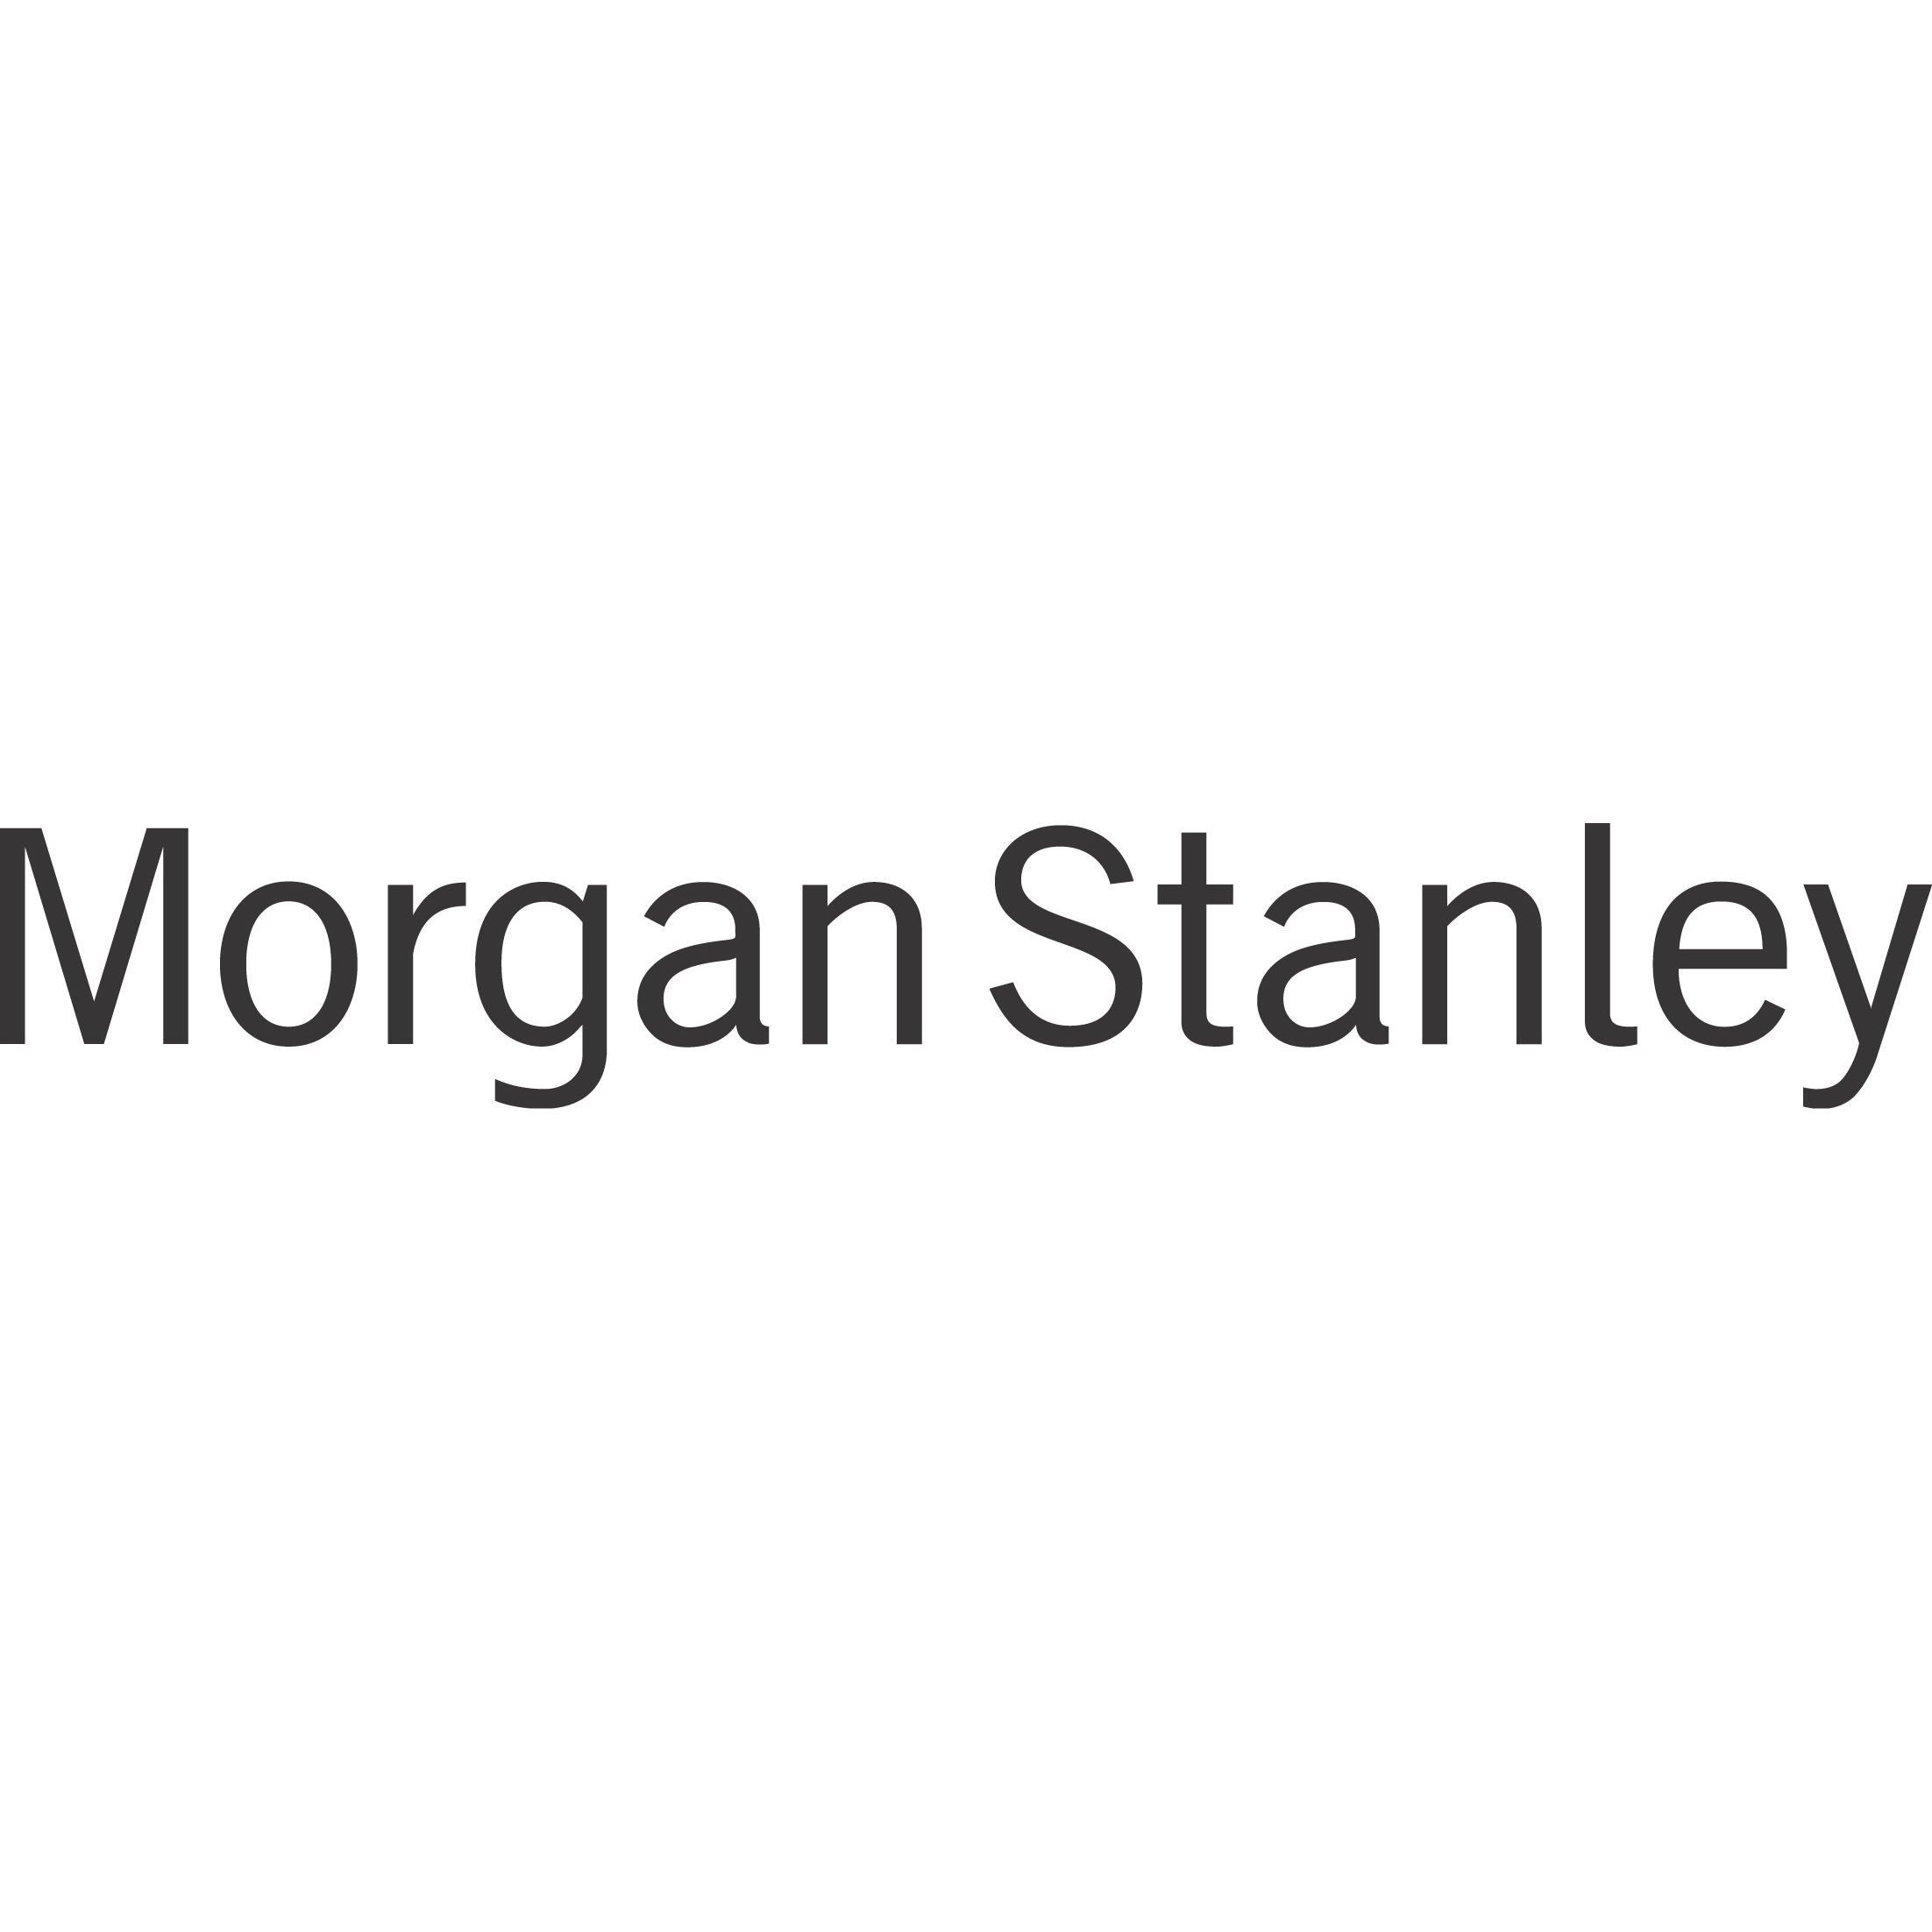 Terry Alden Smith - Morgan Stanley